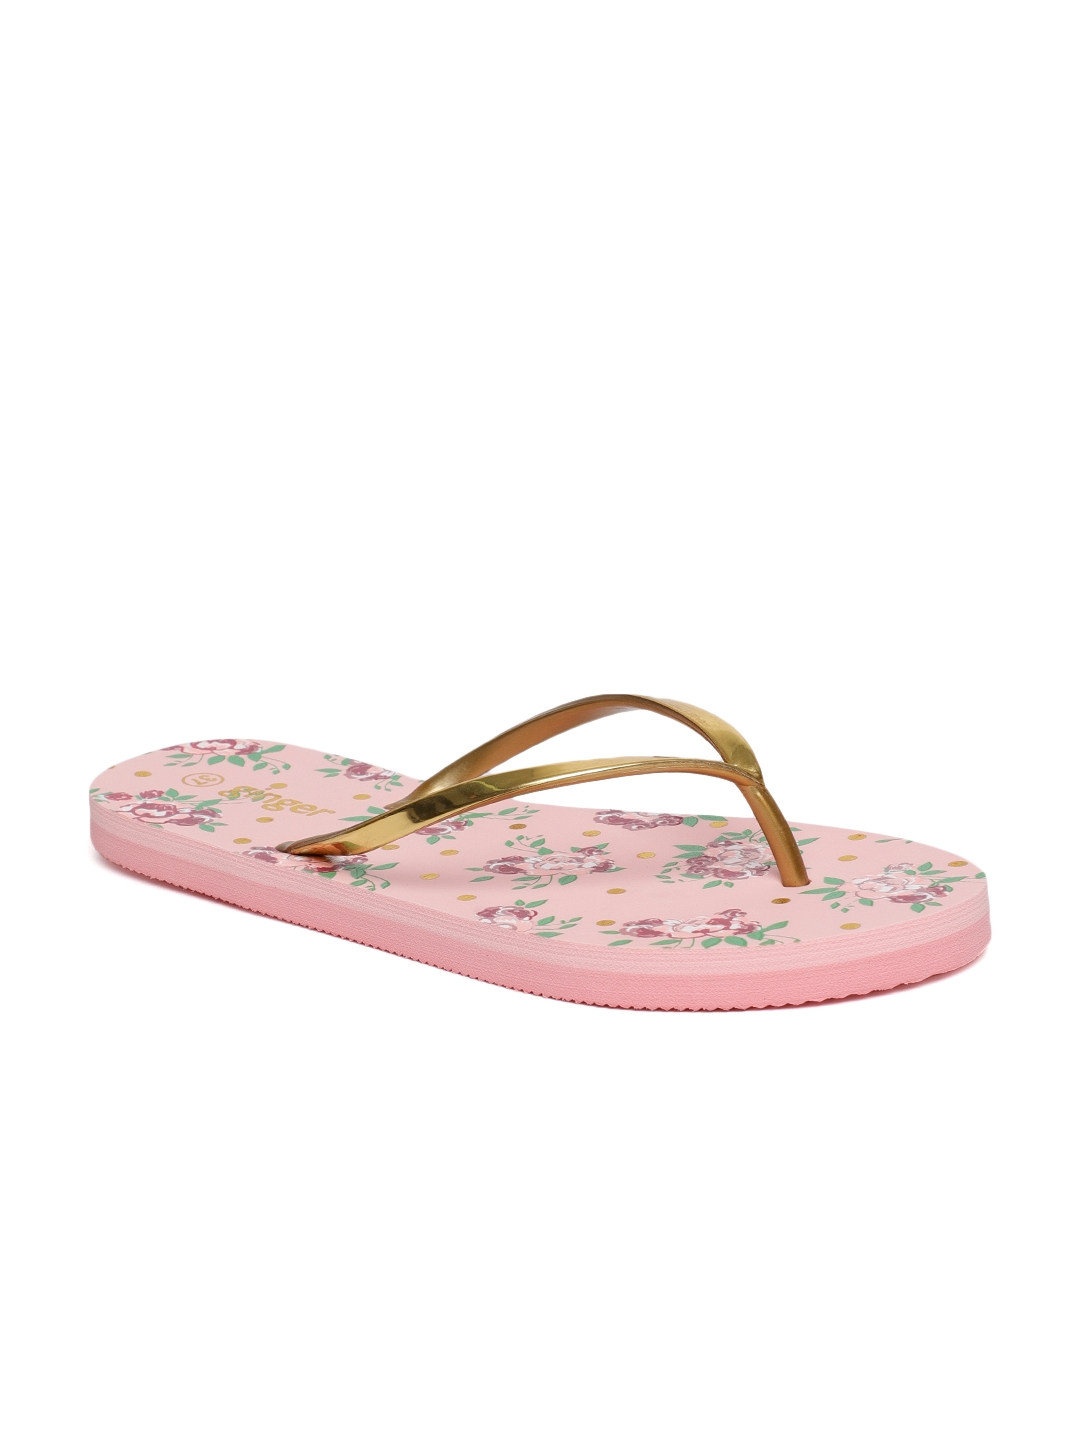 a3fb8cdfe188 Buy Ginger By Lifestyle Women Antique Gold Toned Thong Flip Flops ...